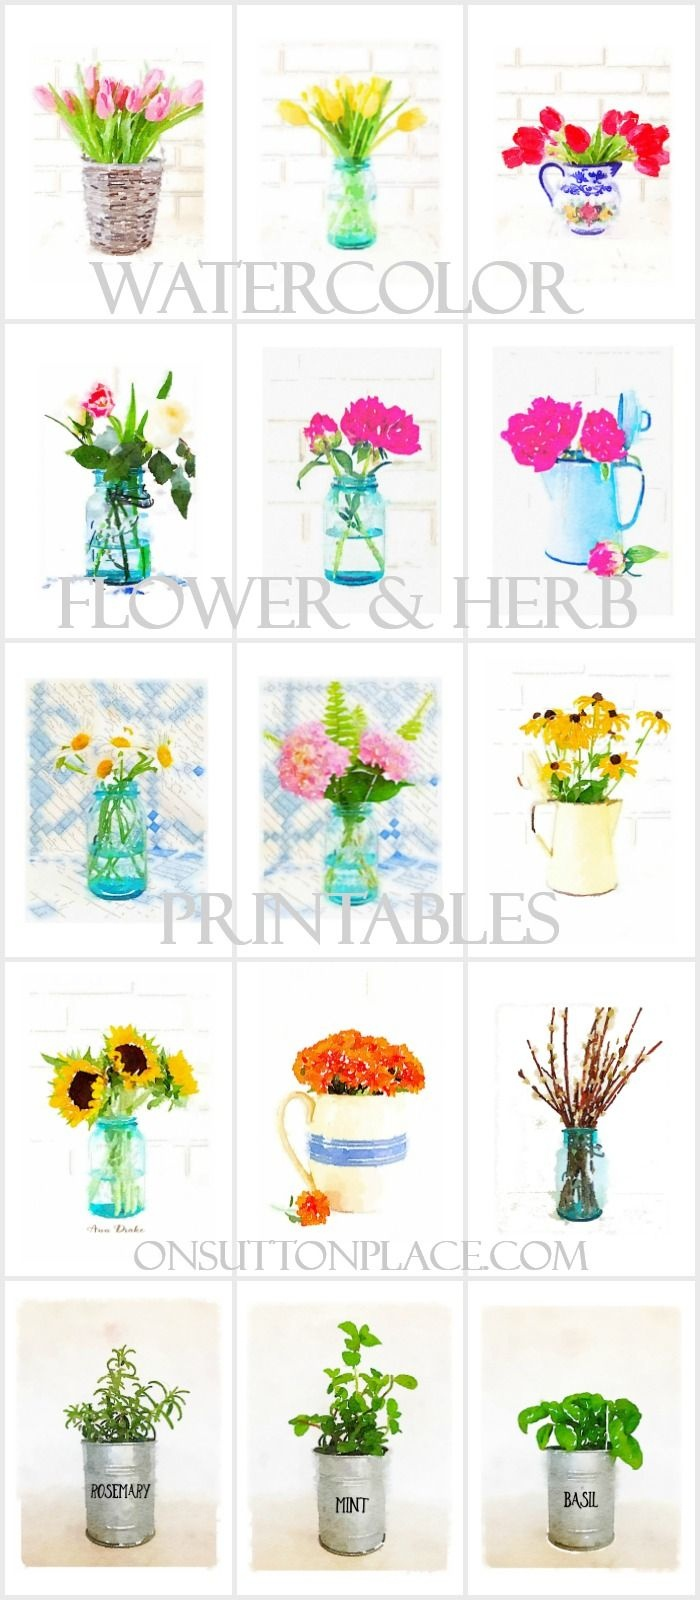 Watercolor Printable Series Flowers & Herbs | On Sutton Place - Free Watercolor Printables